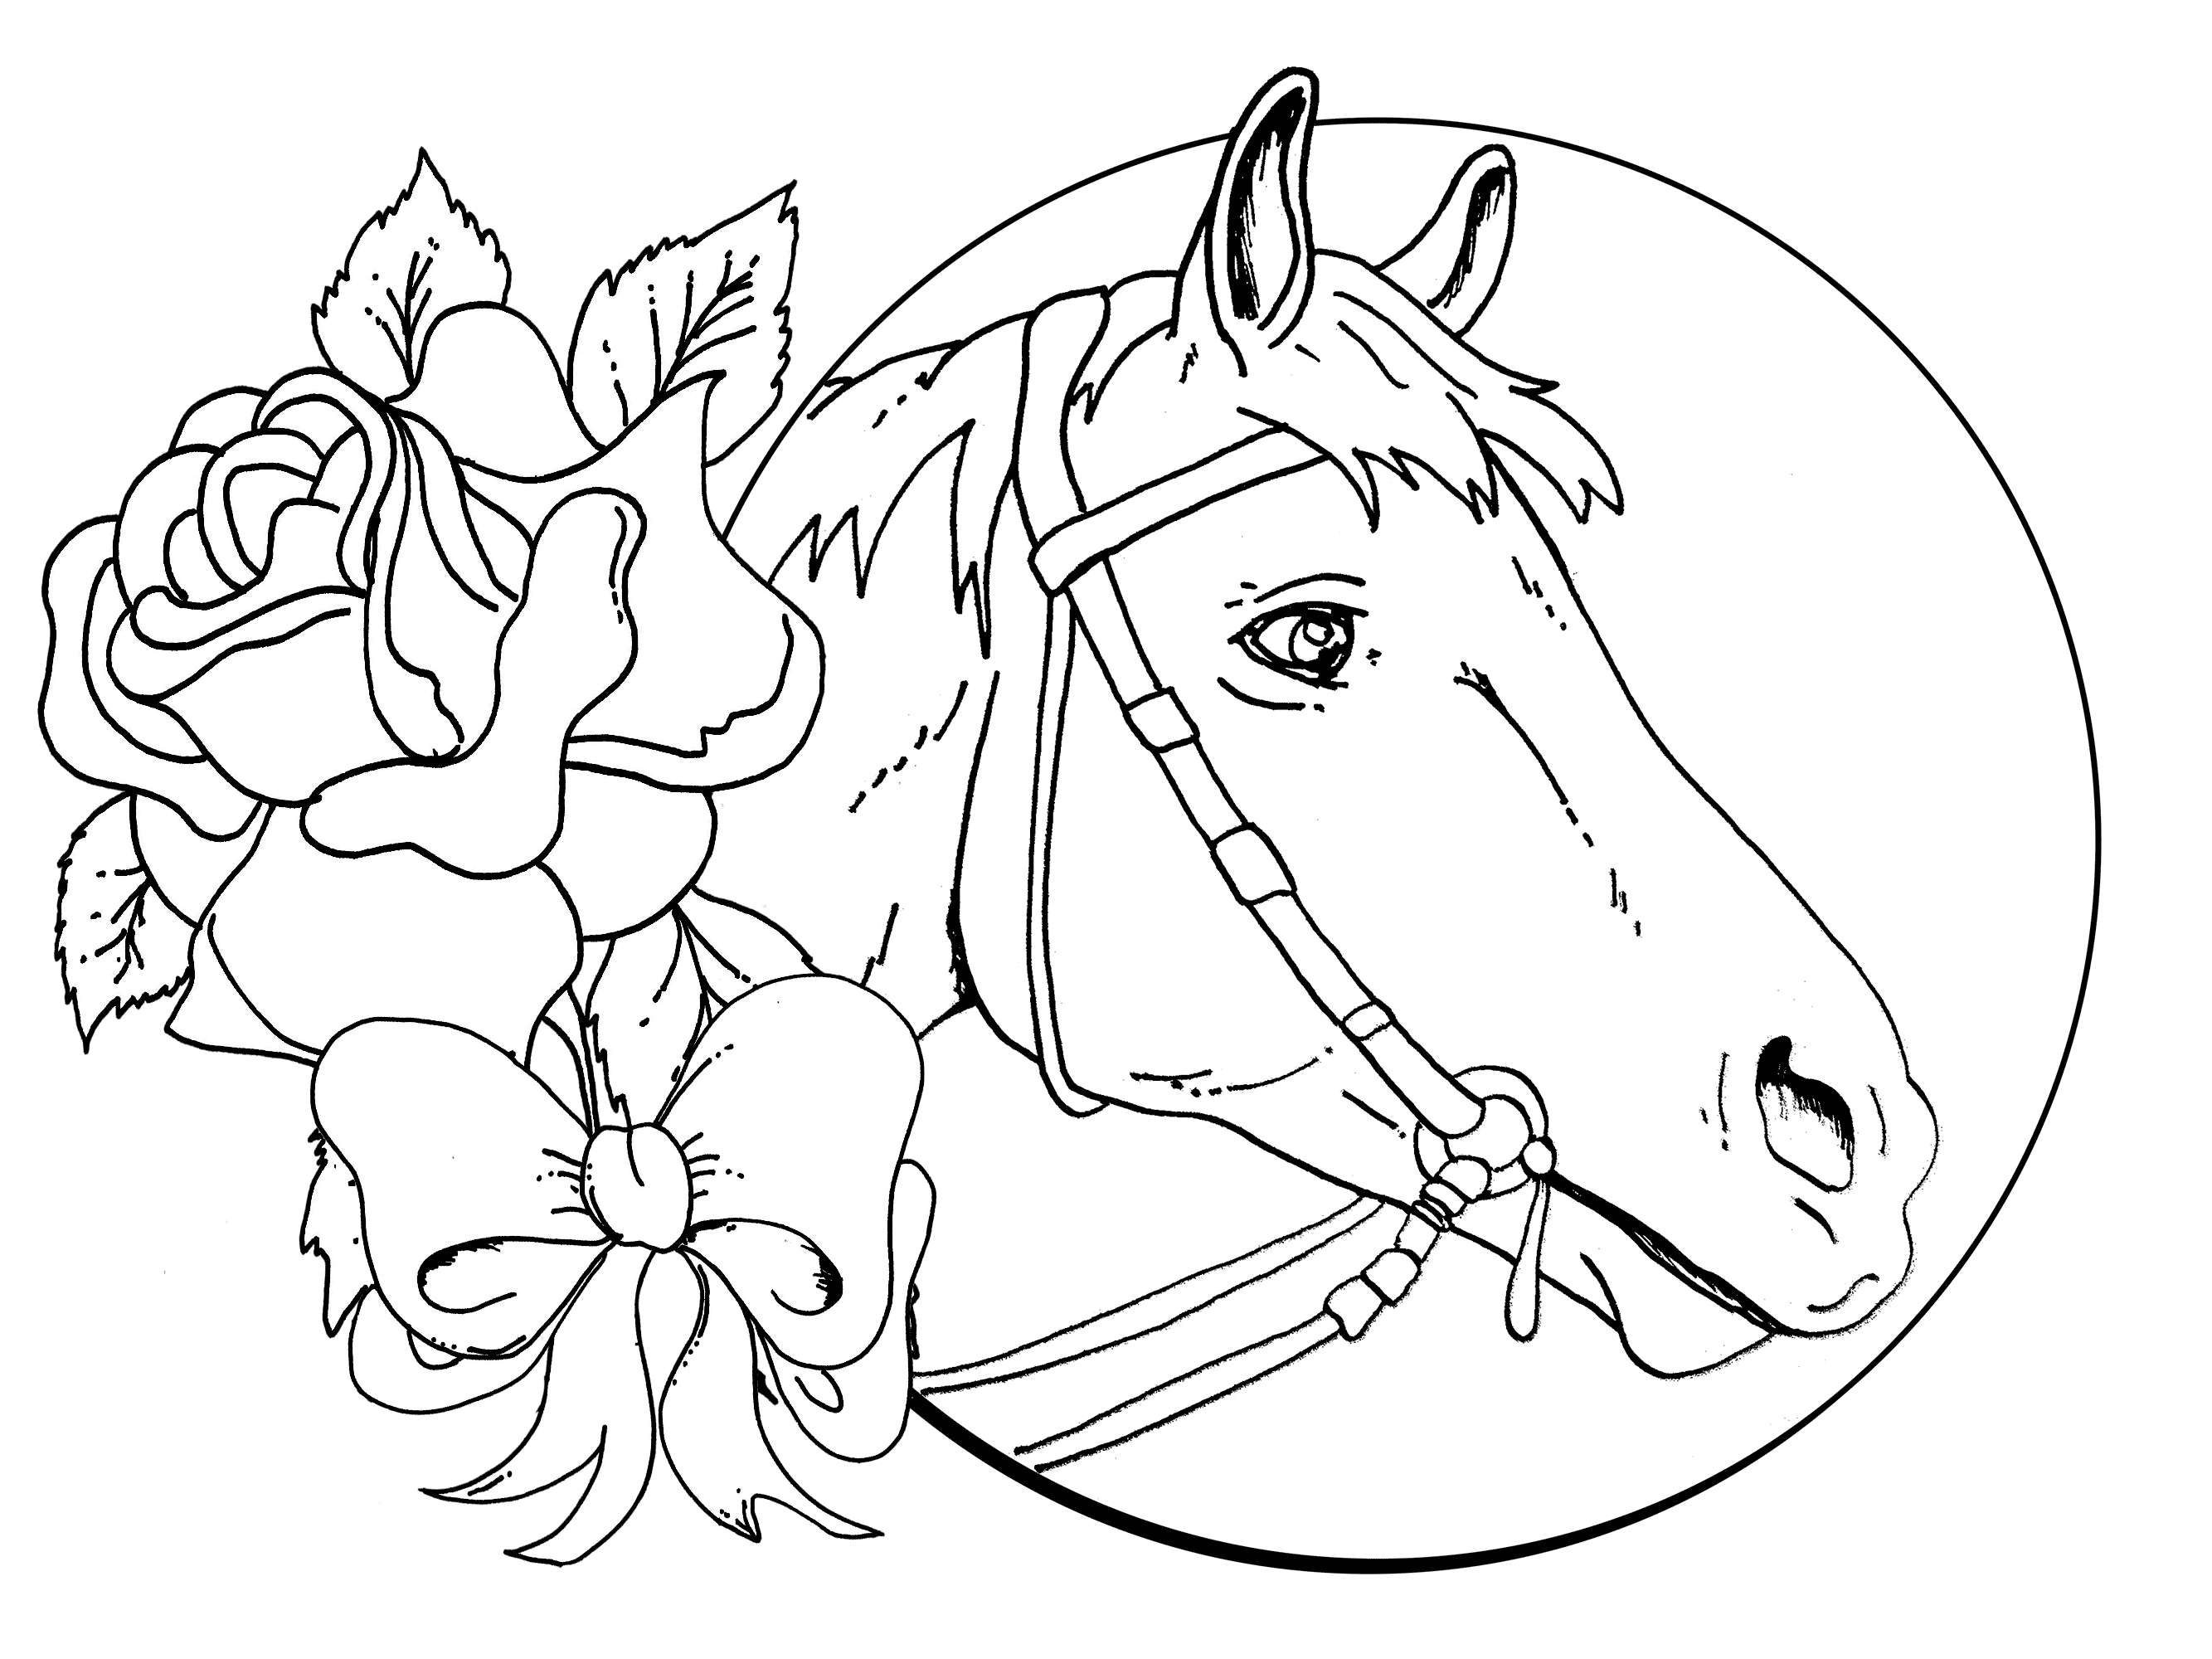 horse coloring games beautiful horse and rose game play free coloring games games horse coloring